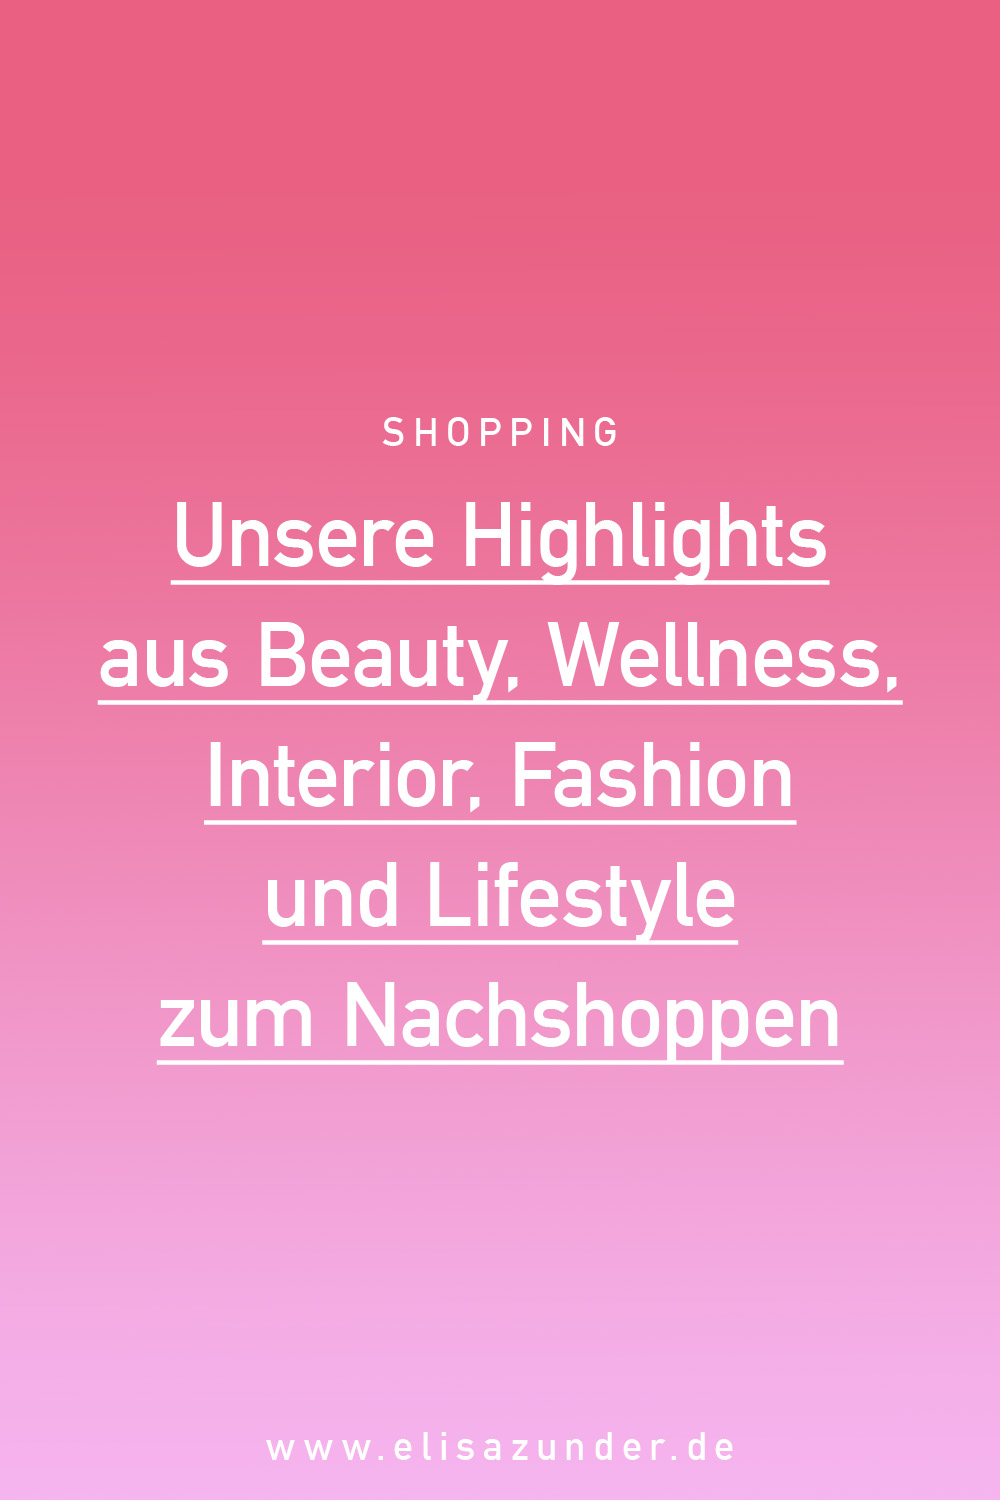 ElisaZunder Shop, Unsere Highlight aus Beauty, Wellness, Fashion, Interior, Mode, Lifestyle, Shopping, Nachshoppen, ElisaZunder Blogazine,